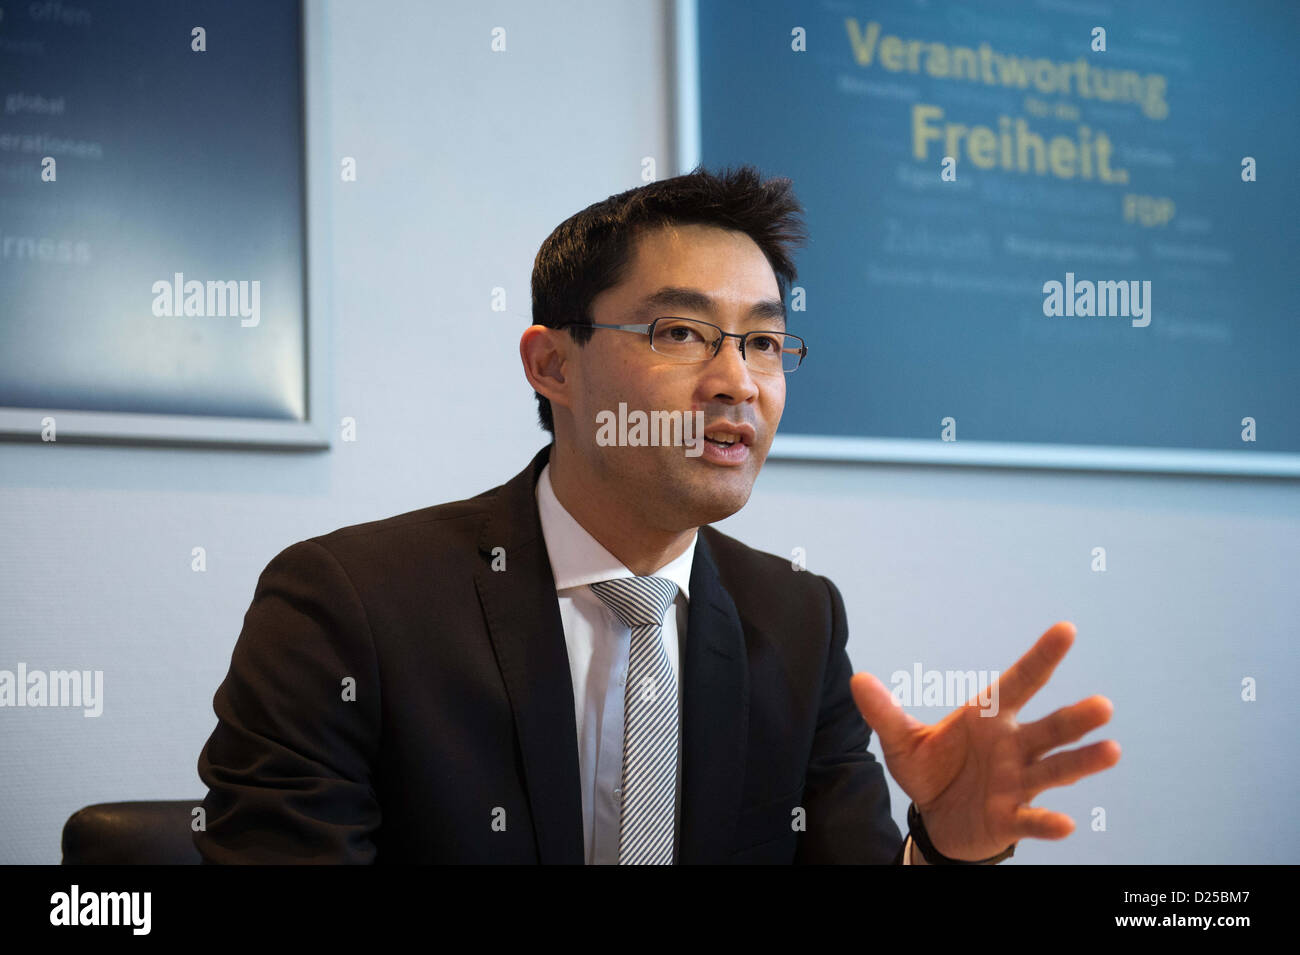 German Federal Minister of Economics and party leader of the FDP, Philipp Rösler joins the FDP-Presidium meeting - Stock Image